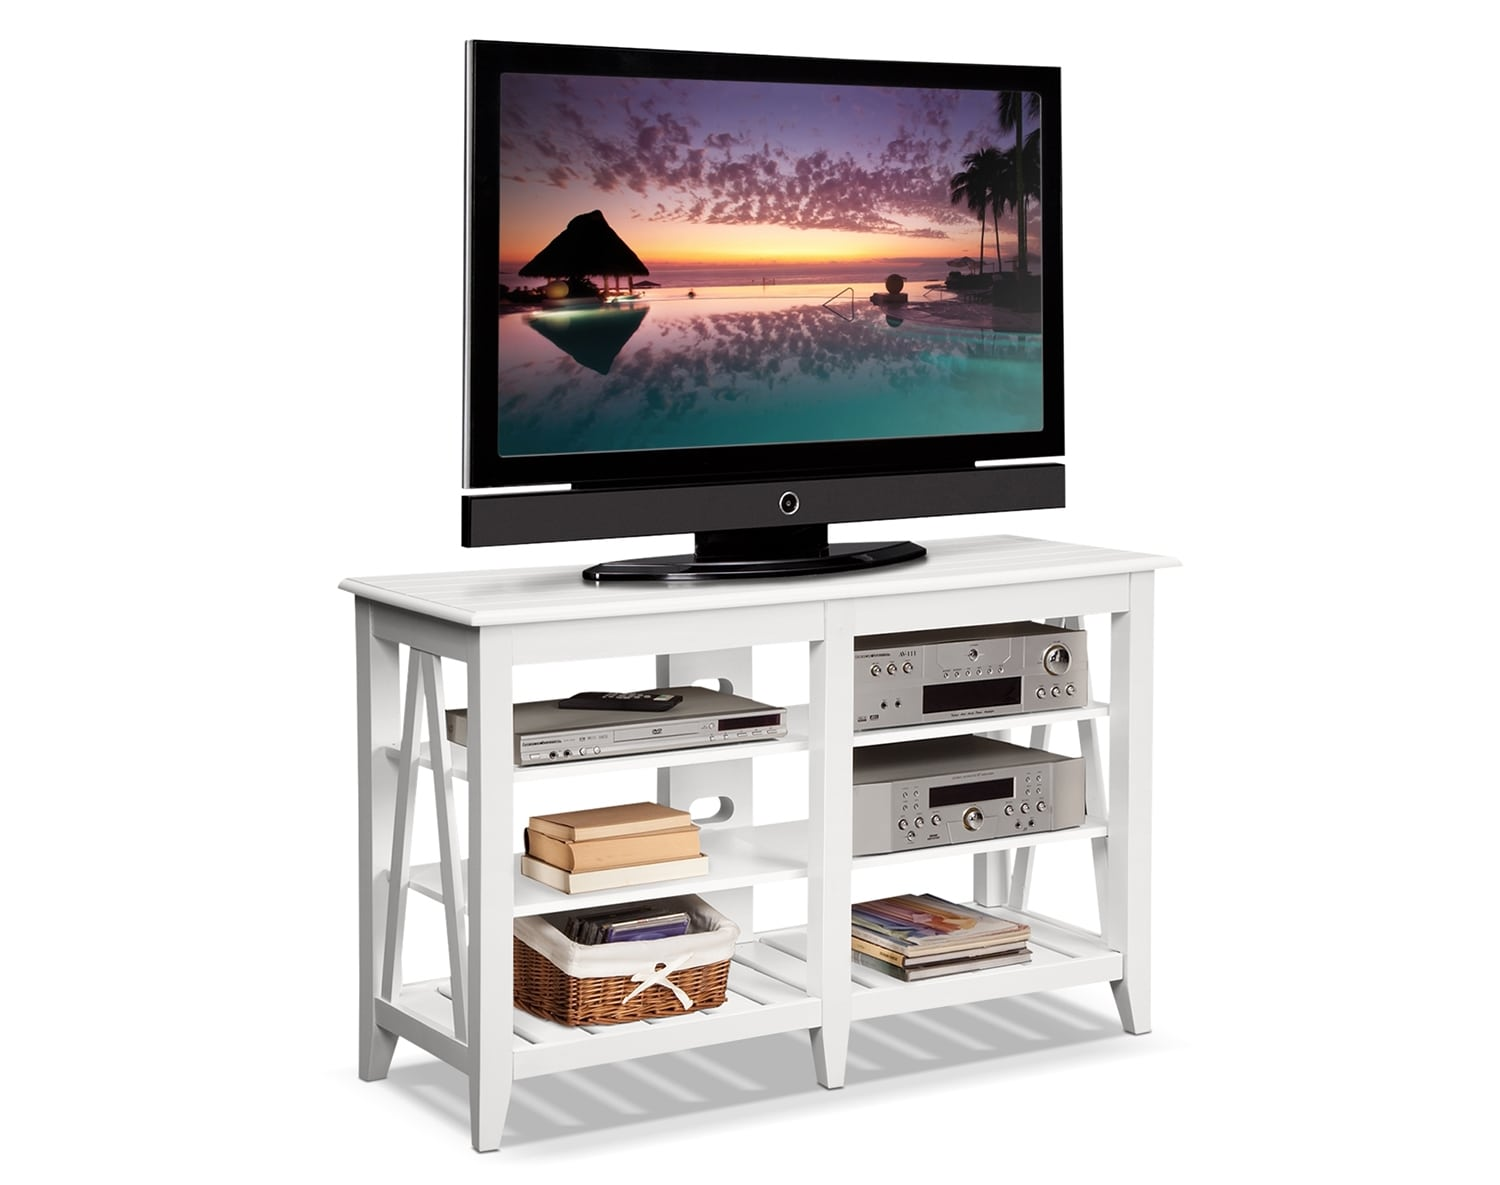 The Plantation Cove Coastal TV Stand Collection